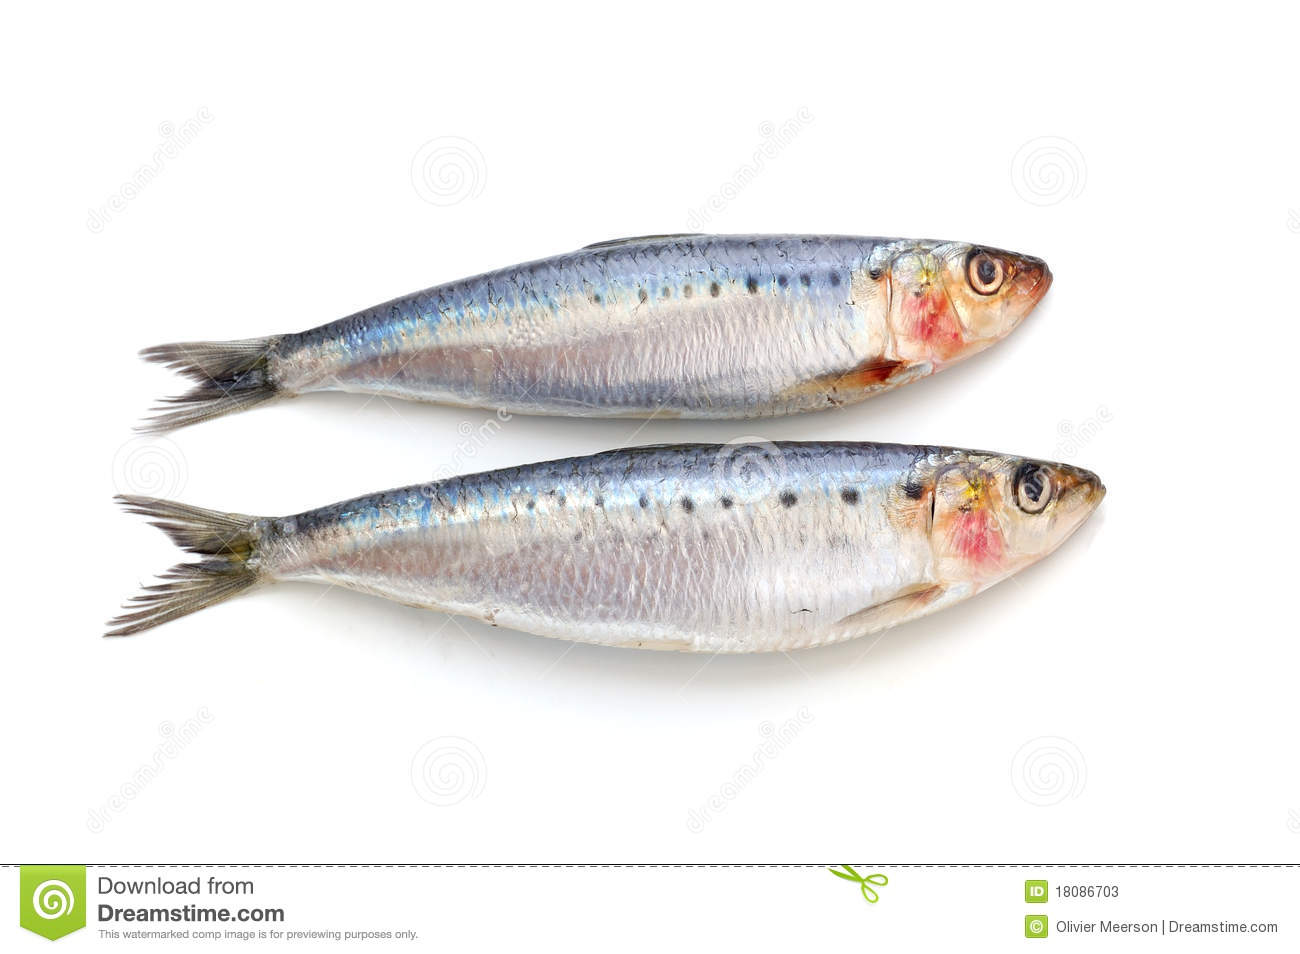 Two fresh sardines on white background, good source of omega three.